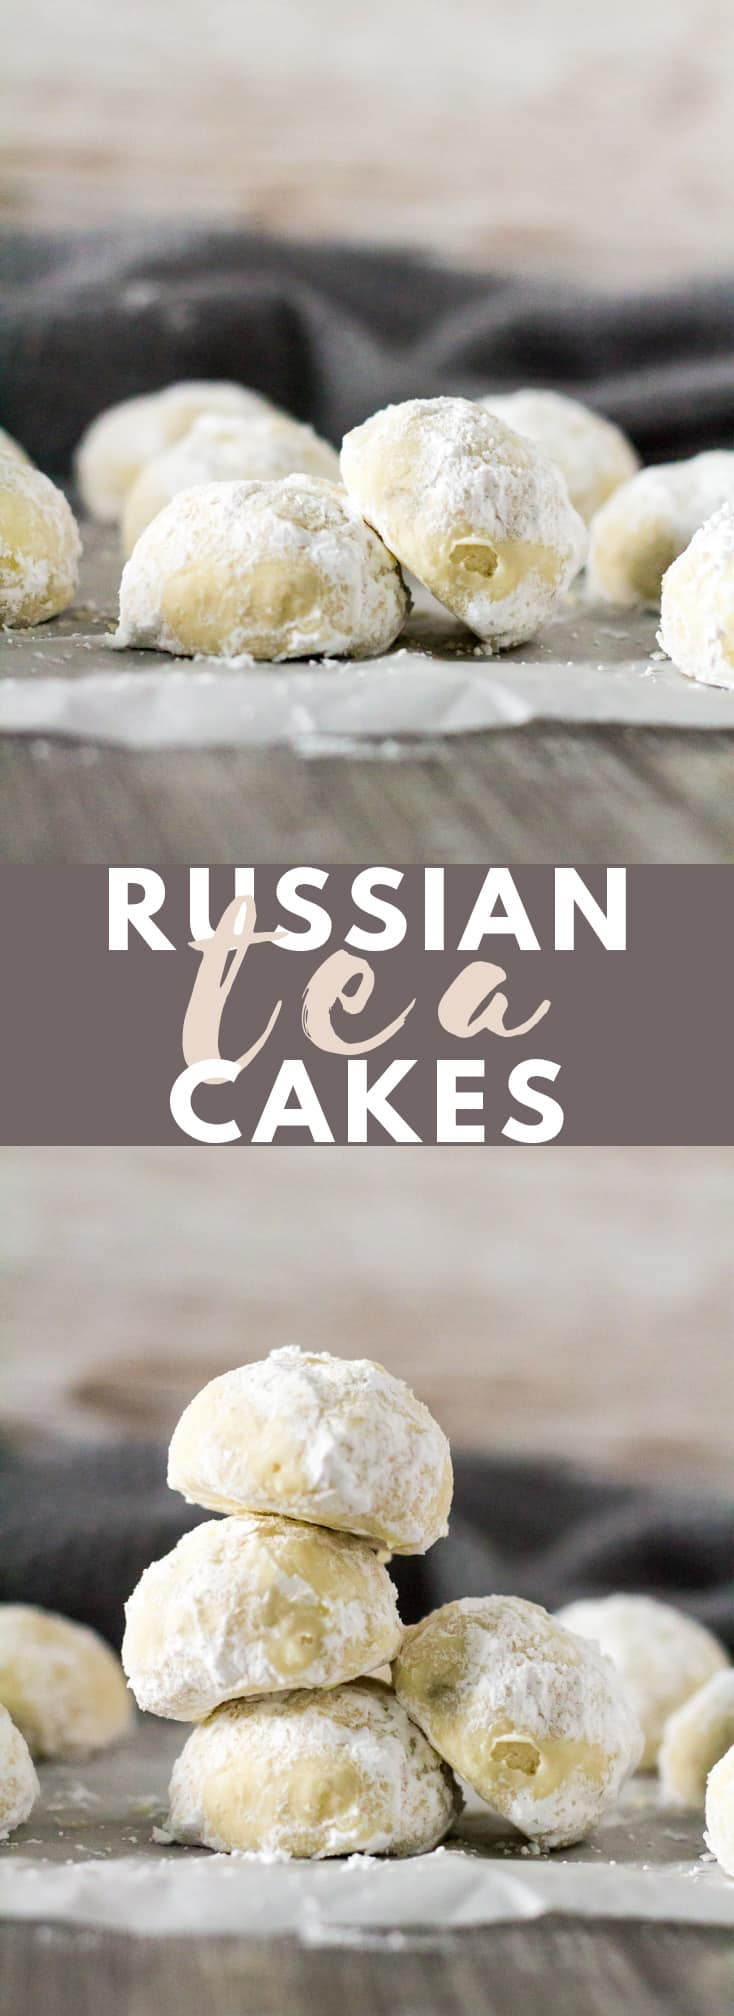 Russian Tea Cakes - Deliciously soft, buttery, melt-in-your-mouth cookies that are coated in icing sugar. They pair perfectly with a hot cup of tea or coffee!